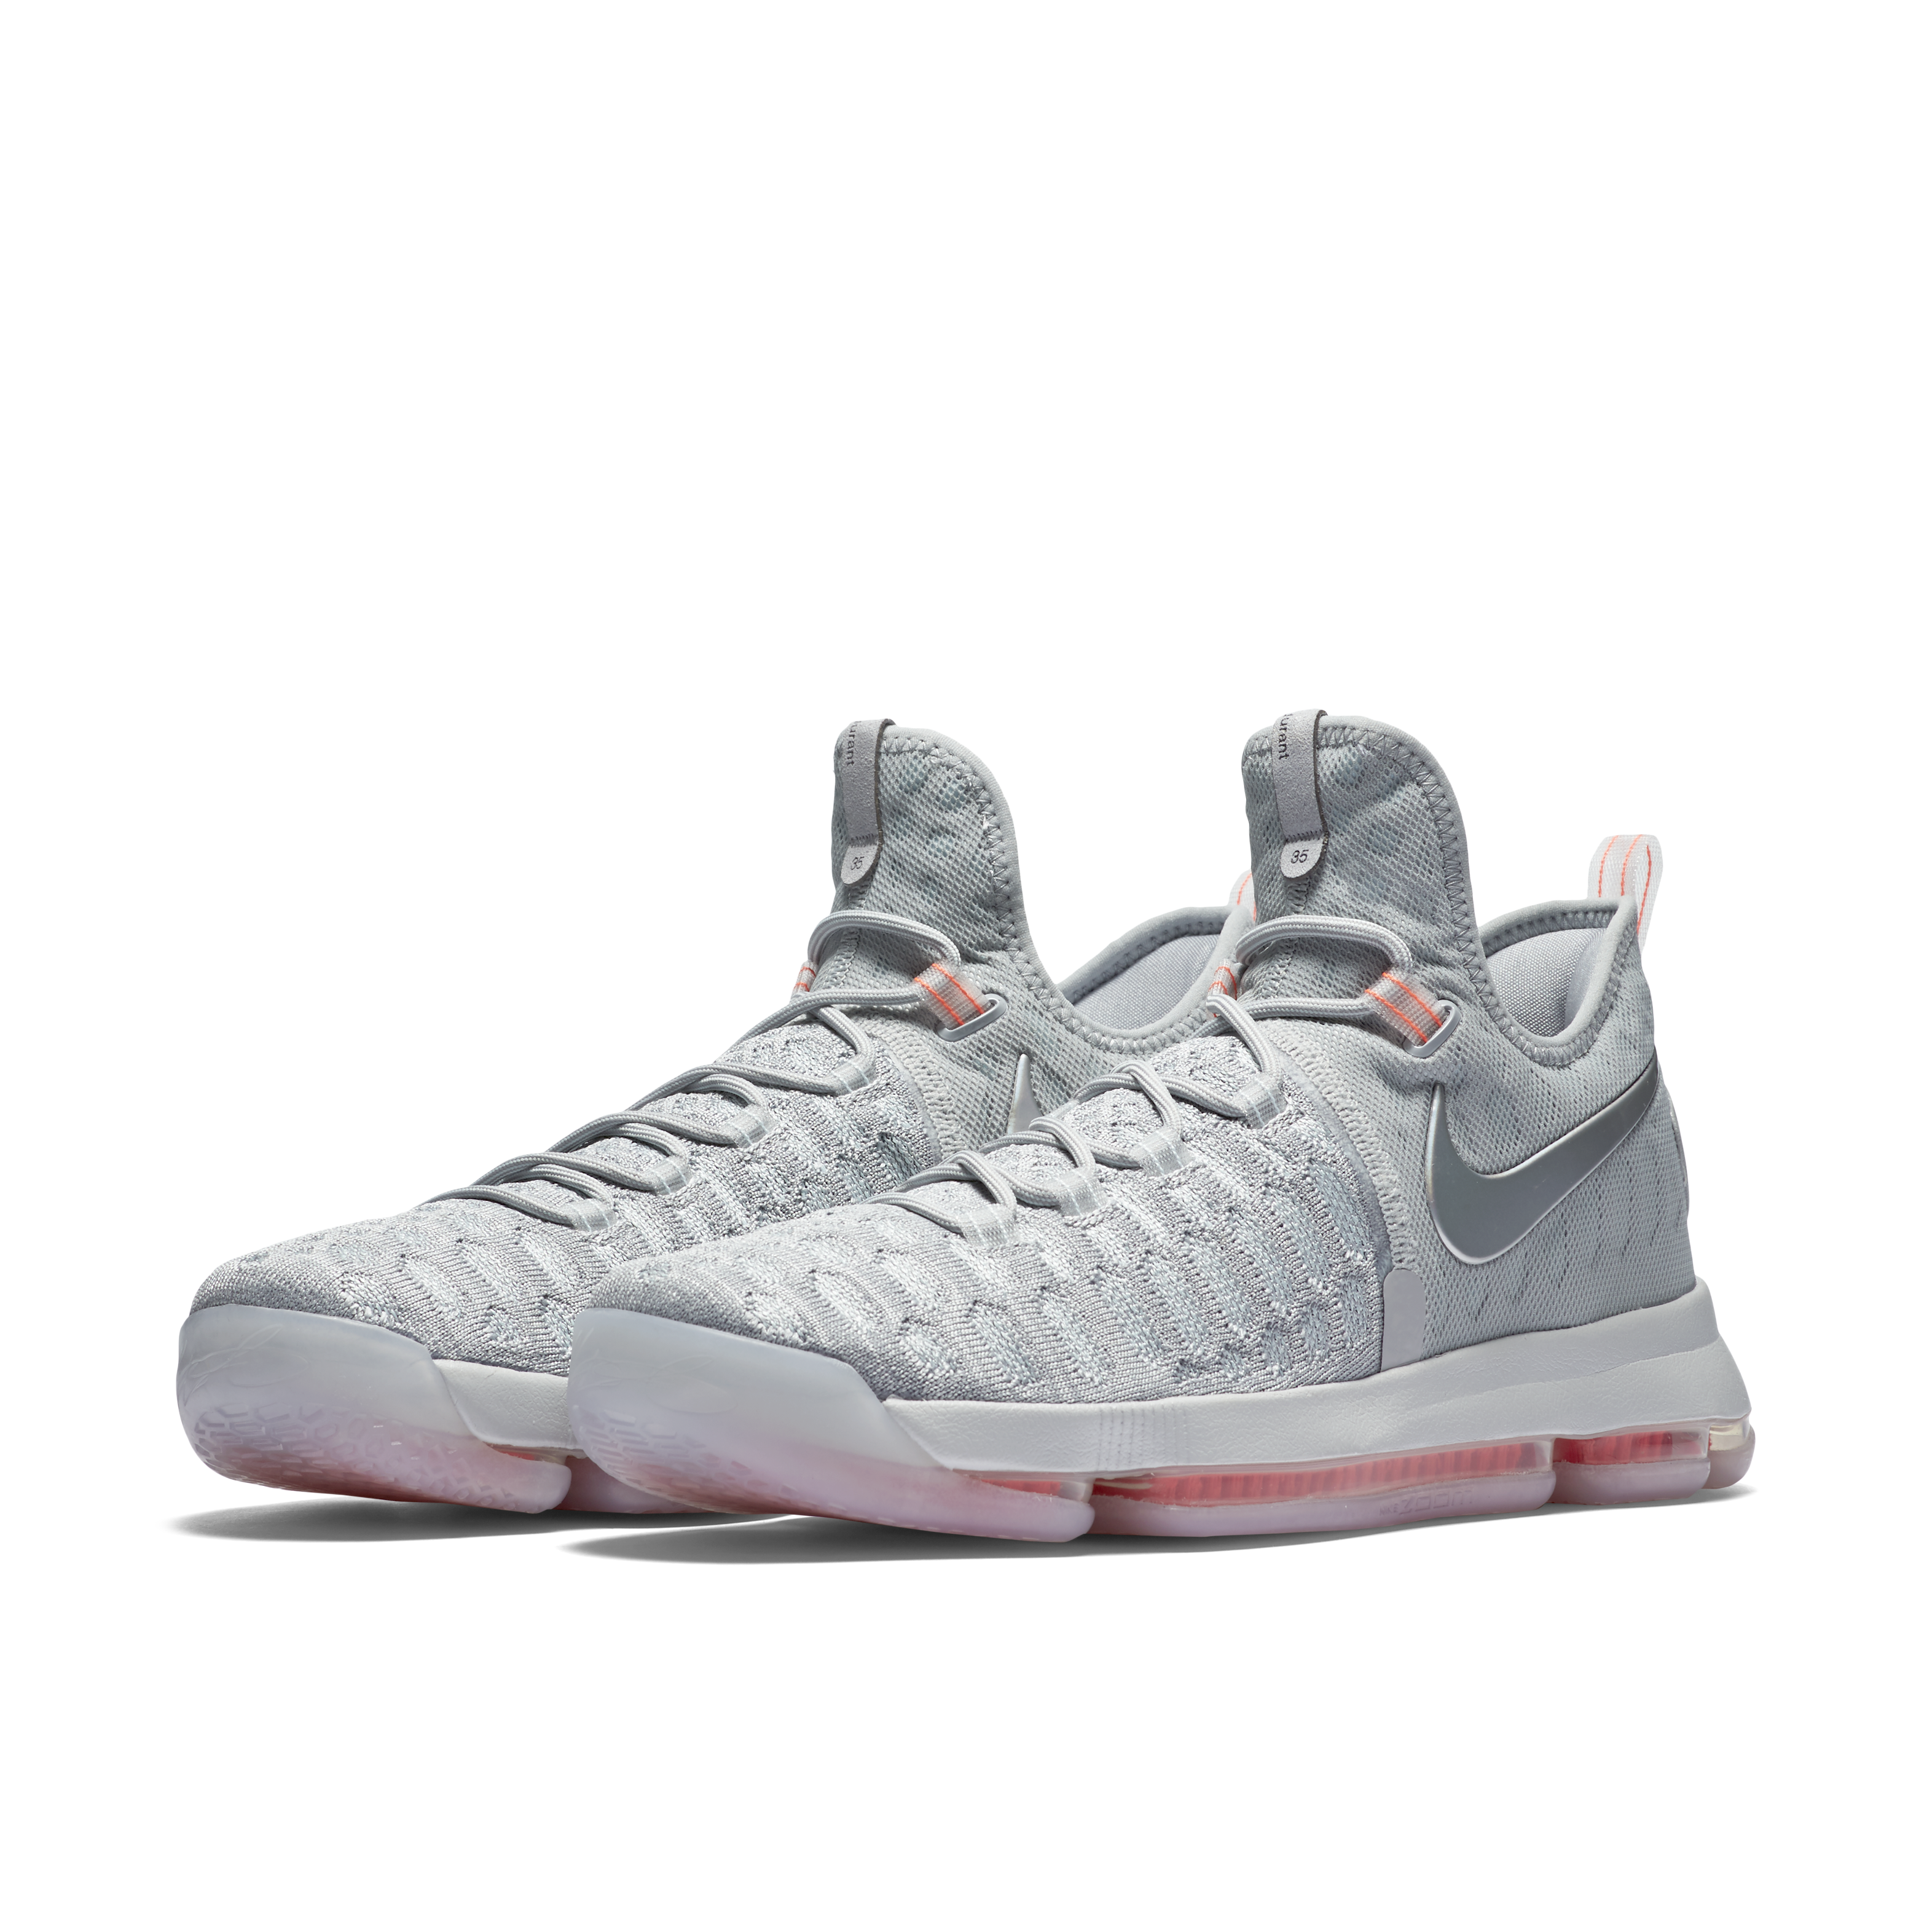 19bb7f2c7fe Kevin Durant s Game-Changing KD9 Shoe - Nike News